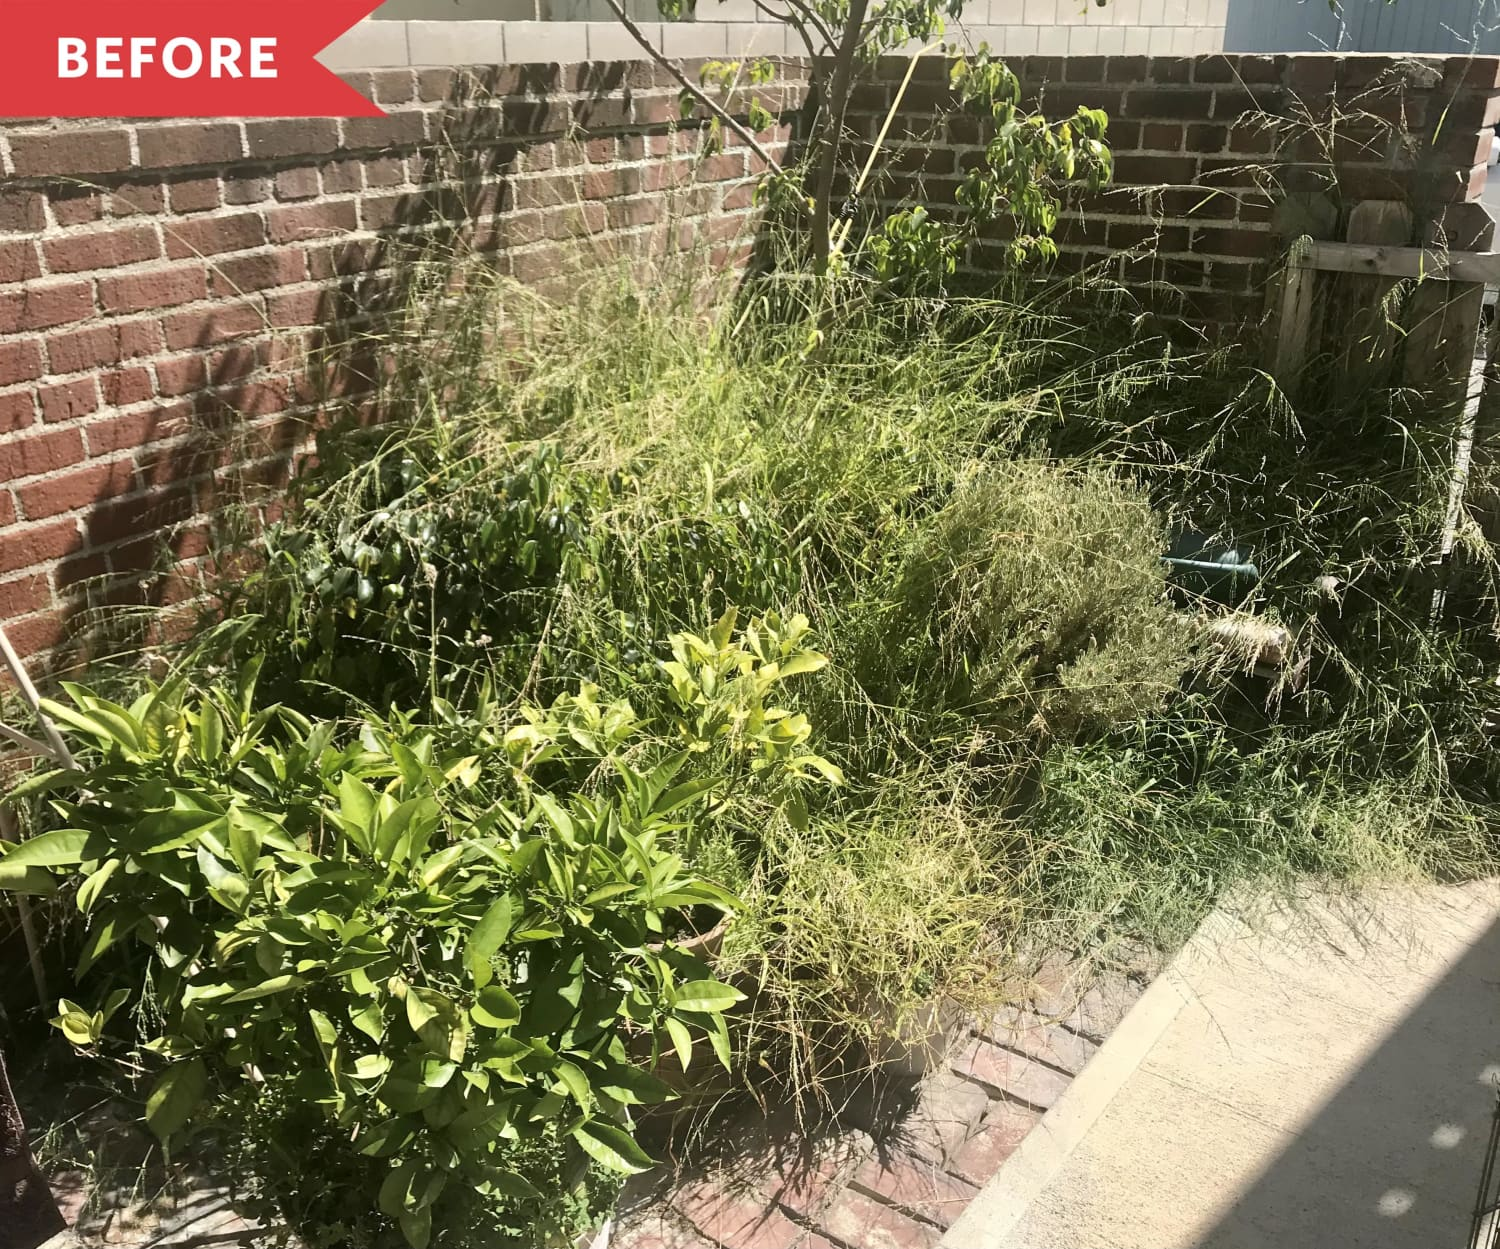 Before & After: This Weed-Infested Patio Got a $1,000 Makeover and Is Now a Relaxing Retreat